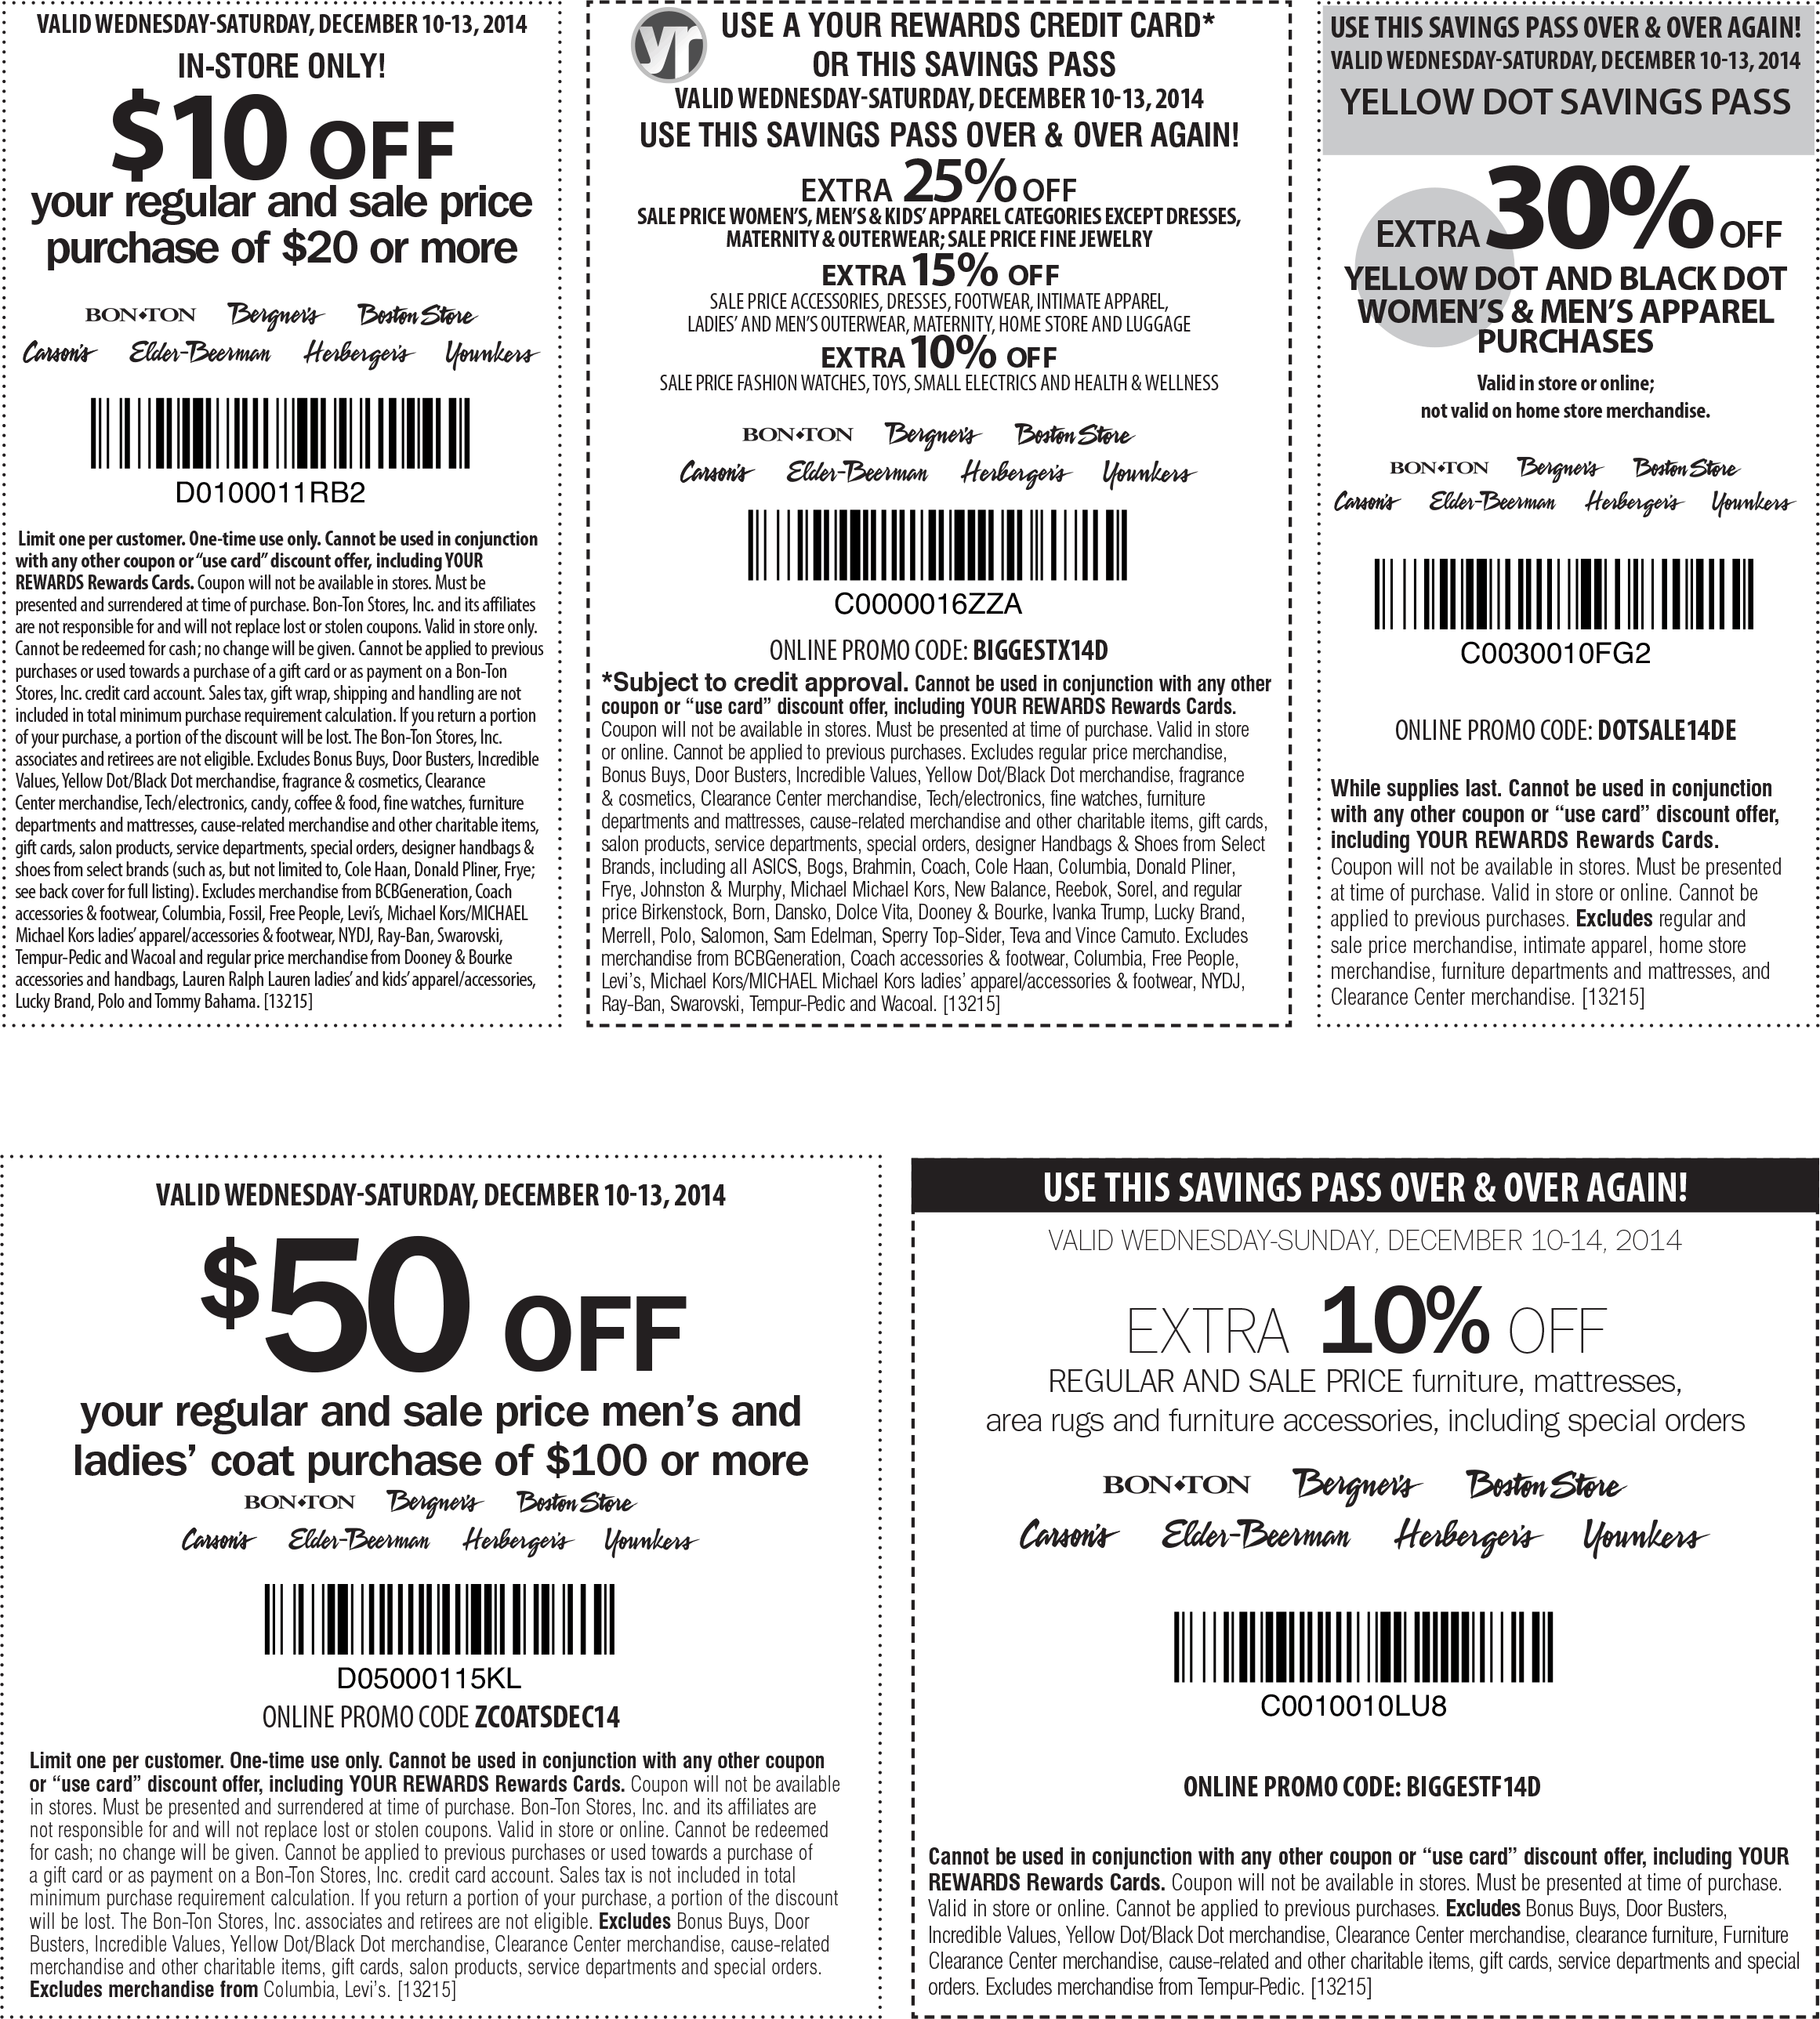 Bon Ton Coupon December 2017 $10 off $20 & more at Carsons, Bon Ton & sister stores, or 25% off online via promo BIGGESTX14D